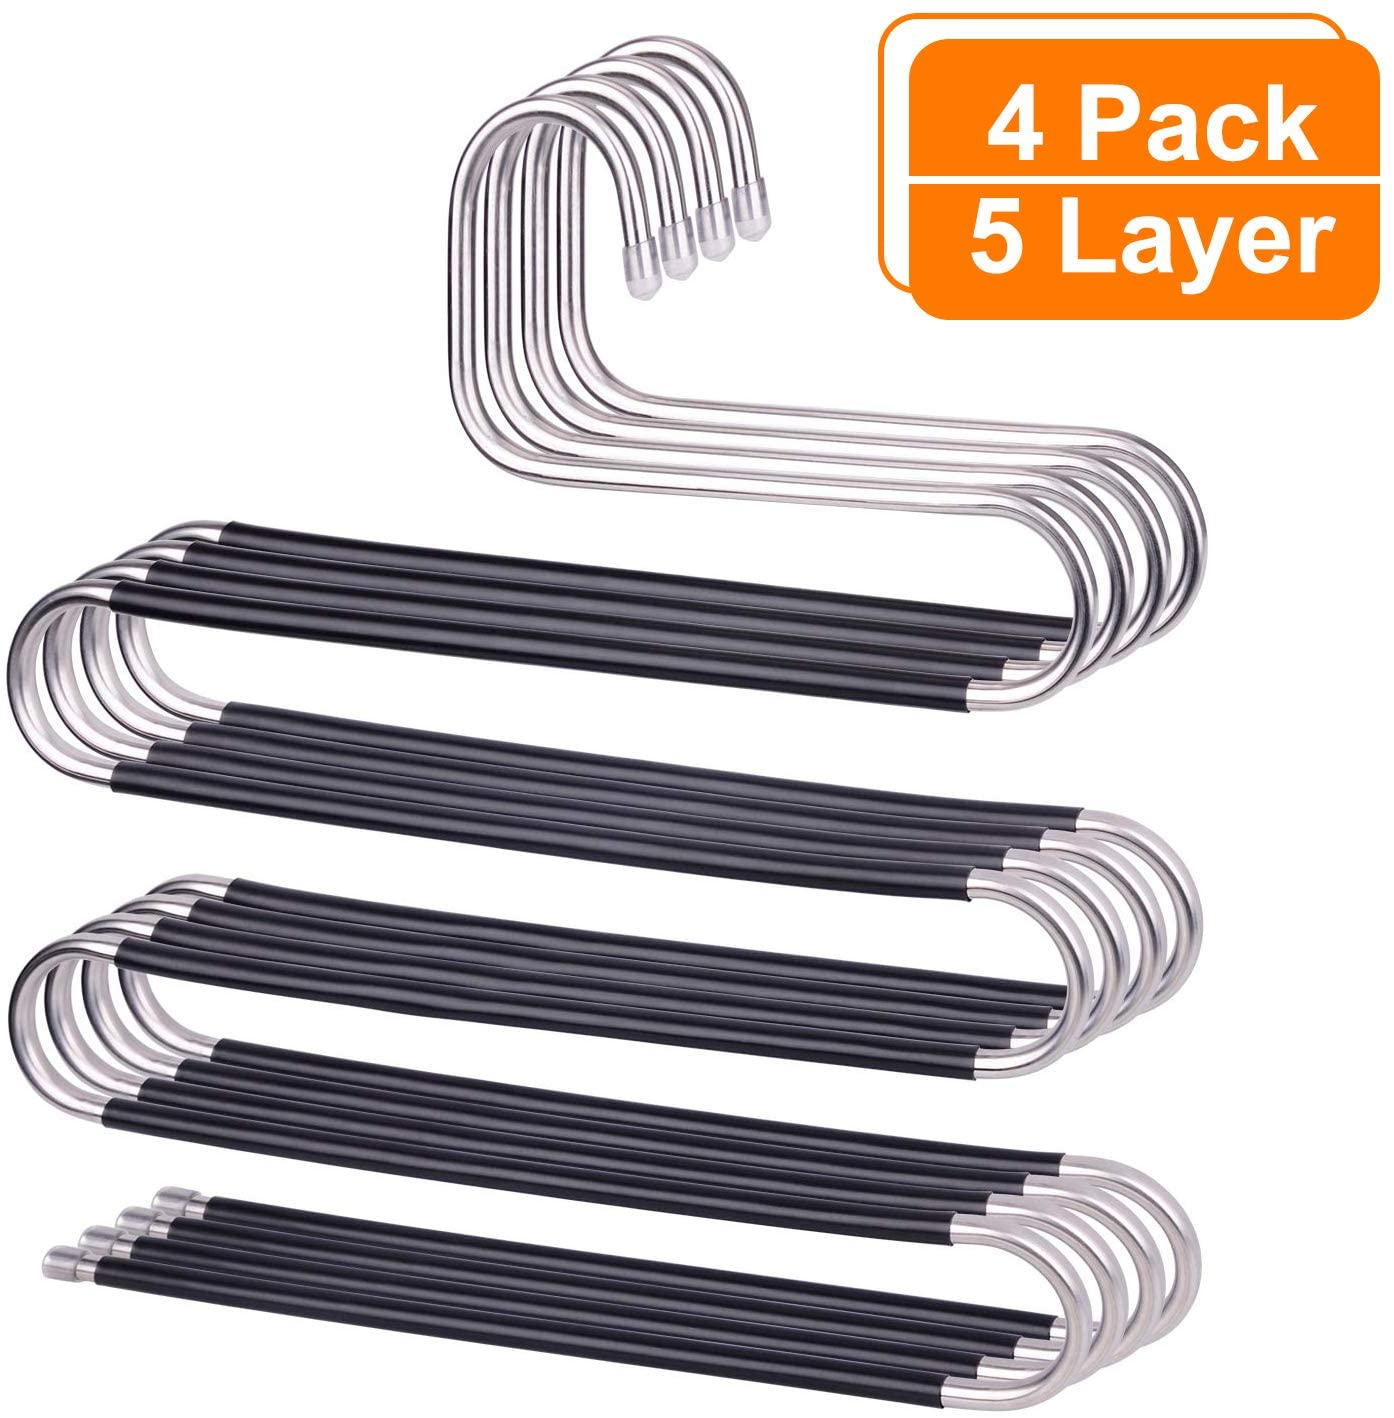 AOBETAK Trouser Hanger Space Saving, 4 Pack S-Type Stainless Steel Pants Jeans Scarf Rack, Non-Slip Heavy Duty Metal Coat Hanger for Mens Women Kids Trousers Scarfs Pant,5 Layers